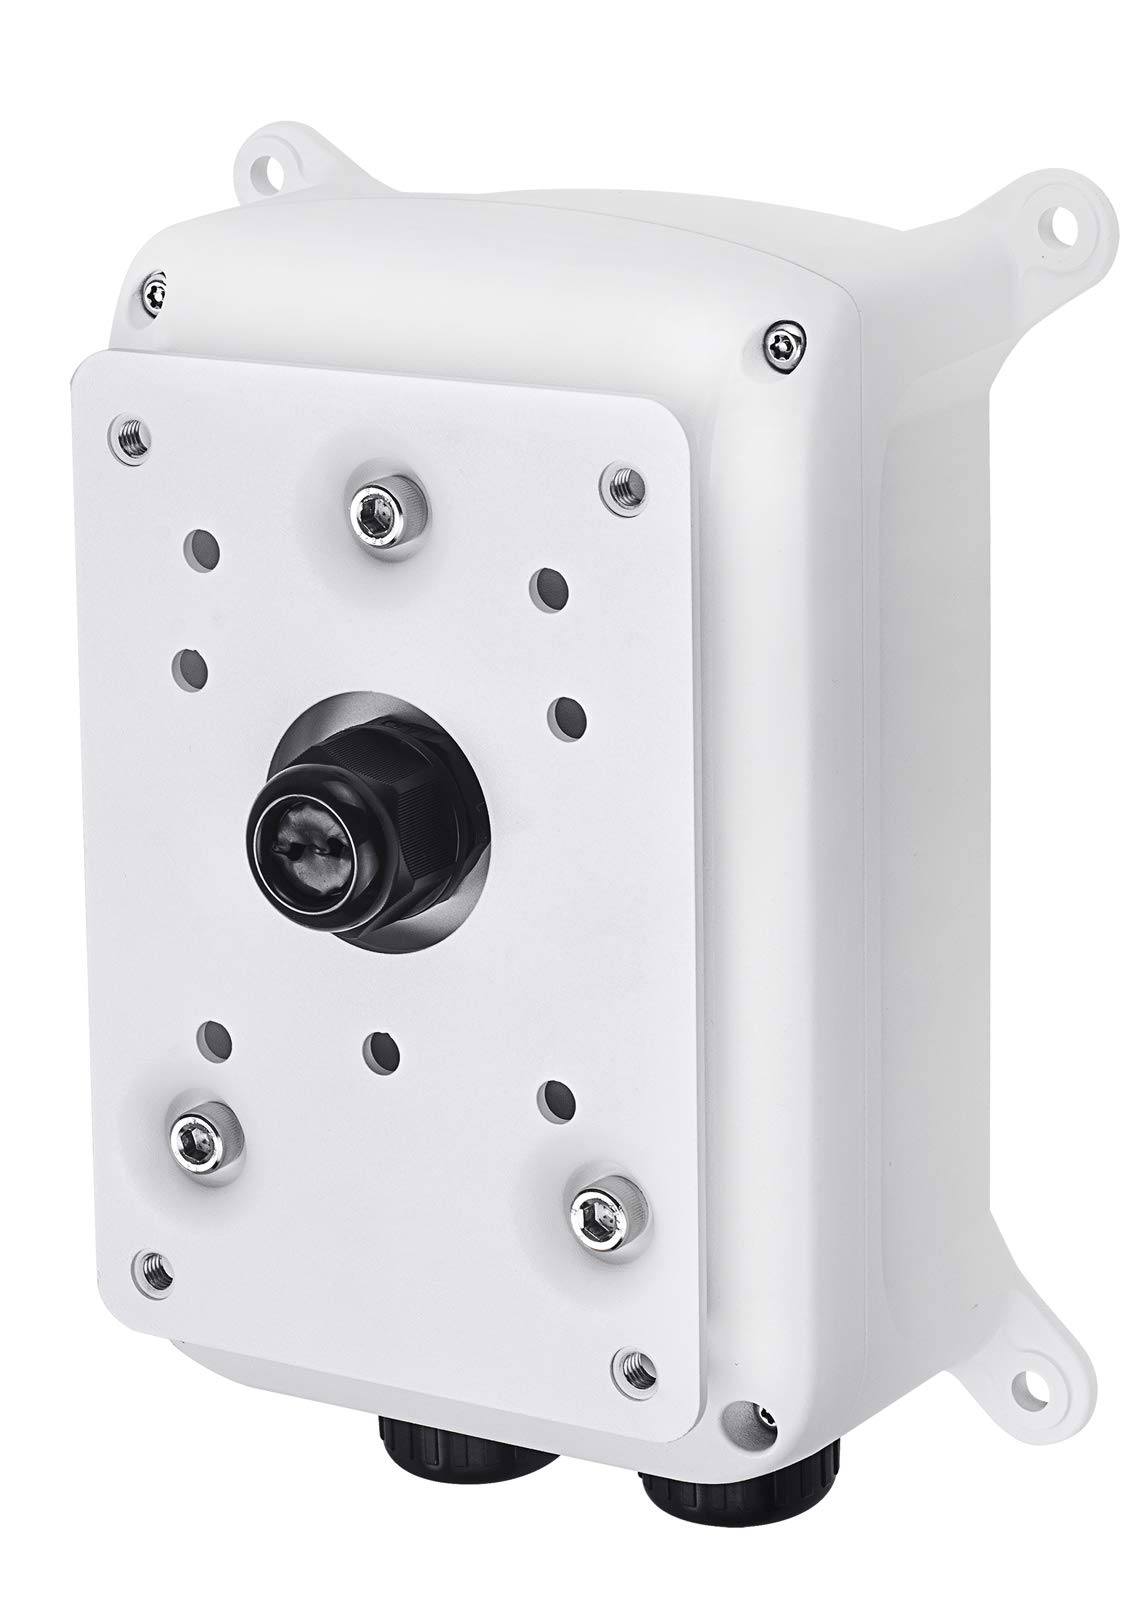 VIVOTEK AA-352 Outdoor Mounting Box by VIVOTEK